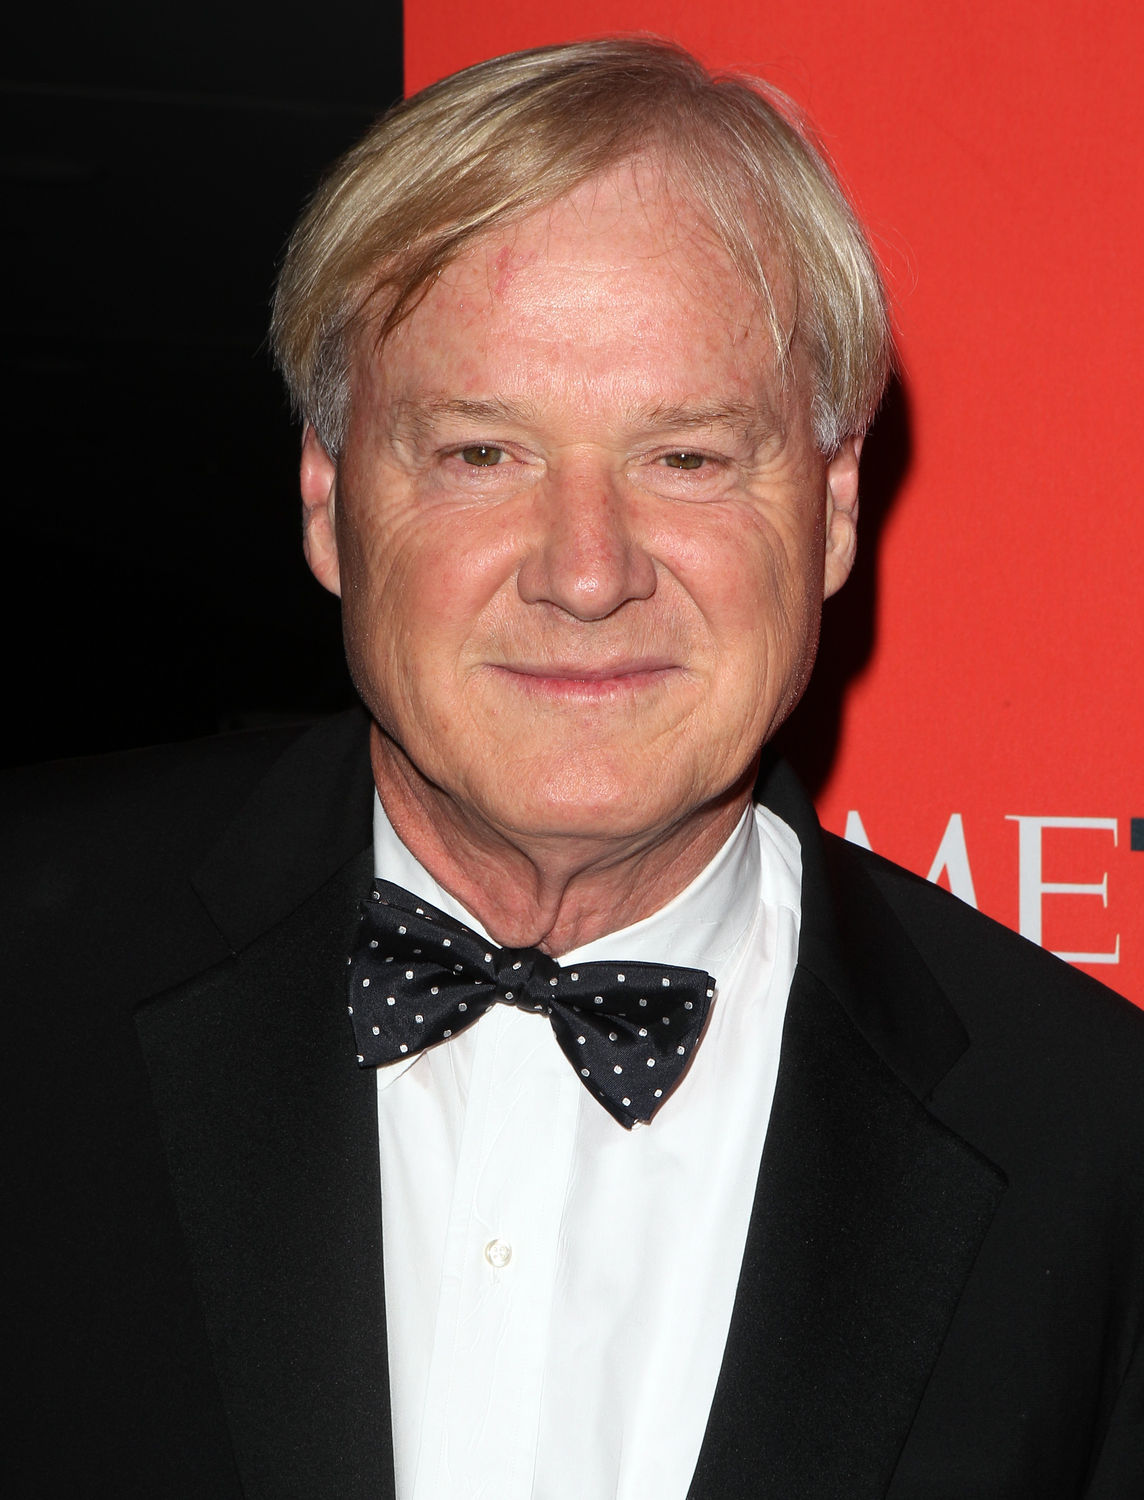 Chris Matthews arrives at Time Magazines 100 Most Influential People Gala at the Time Warner Center in New York